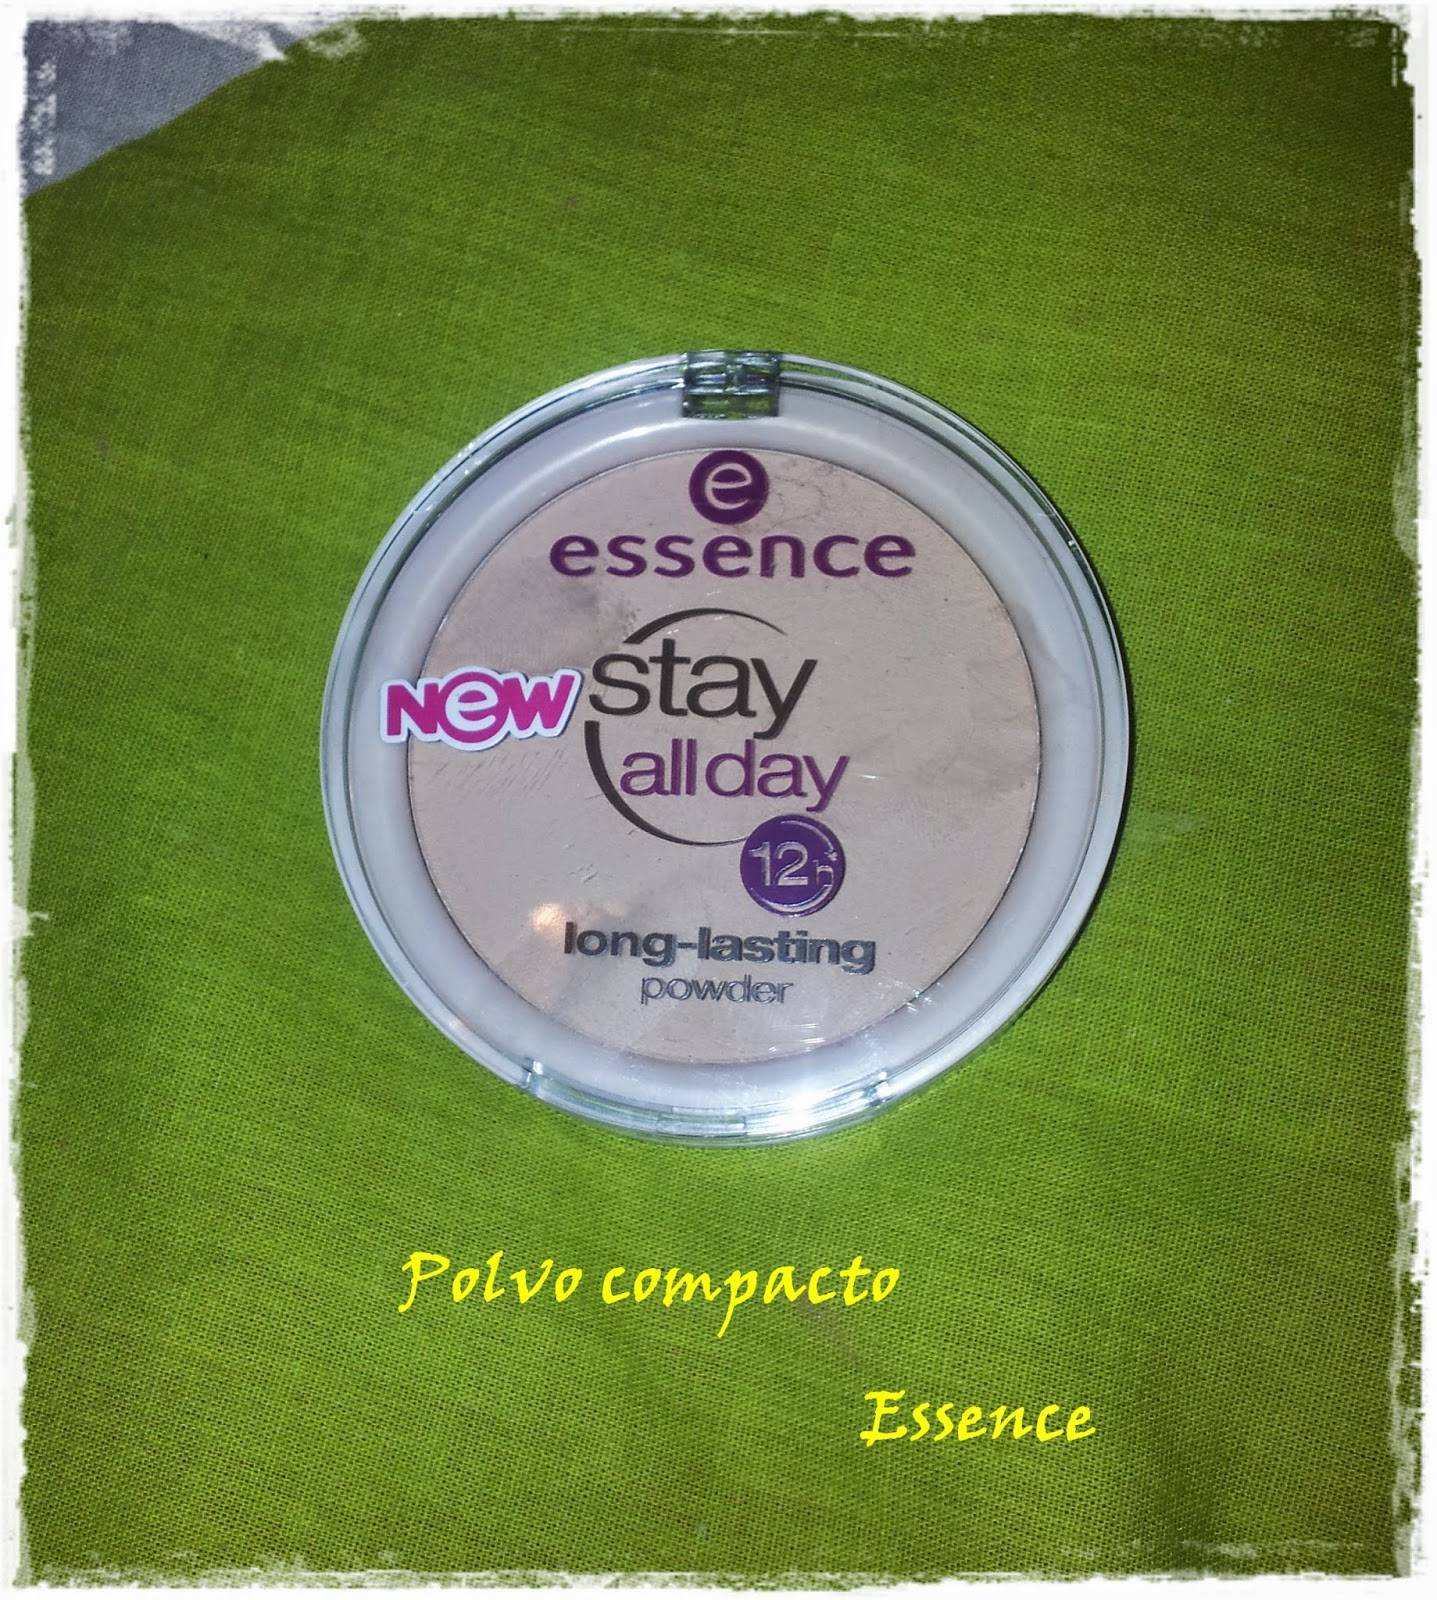 Stay all day long lasting powder de Essence